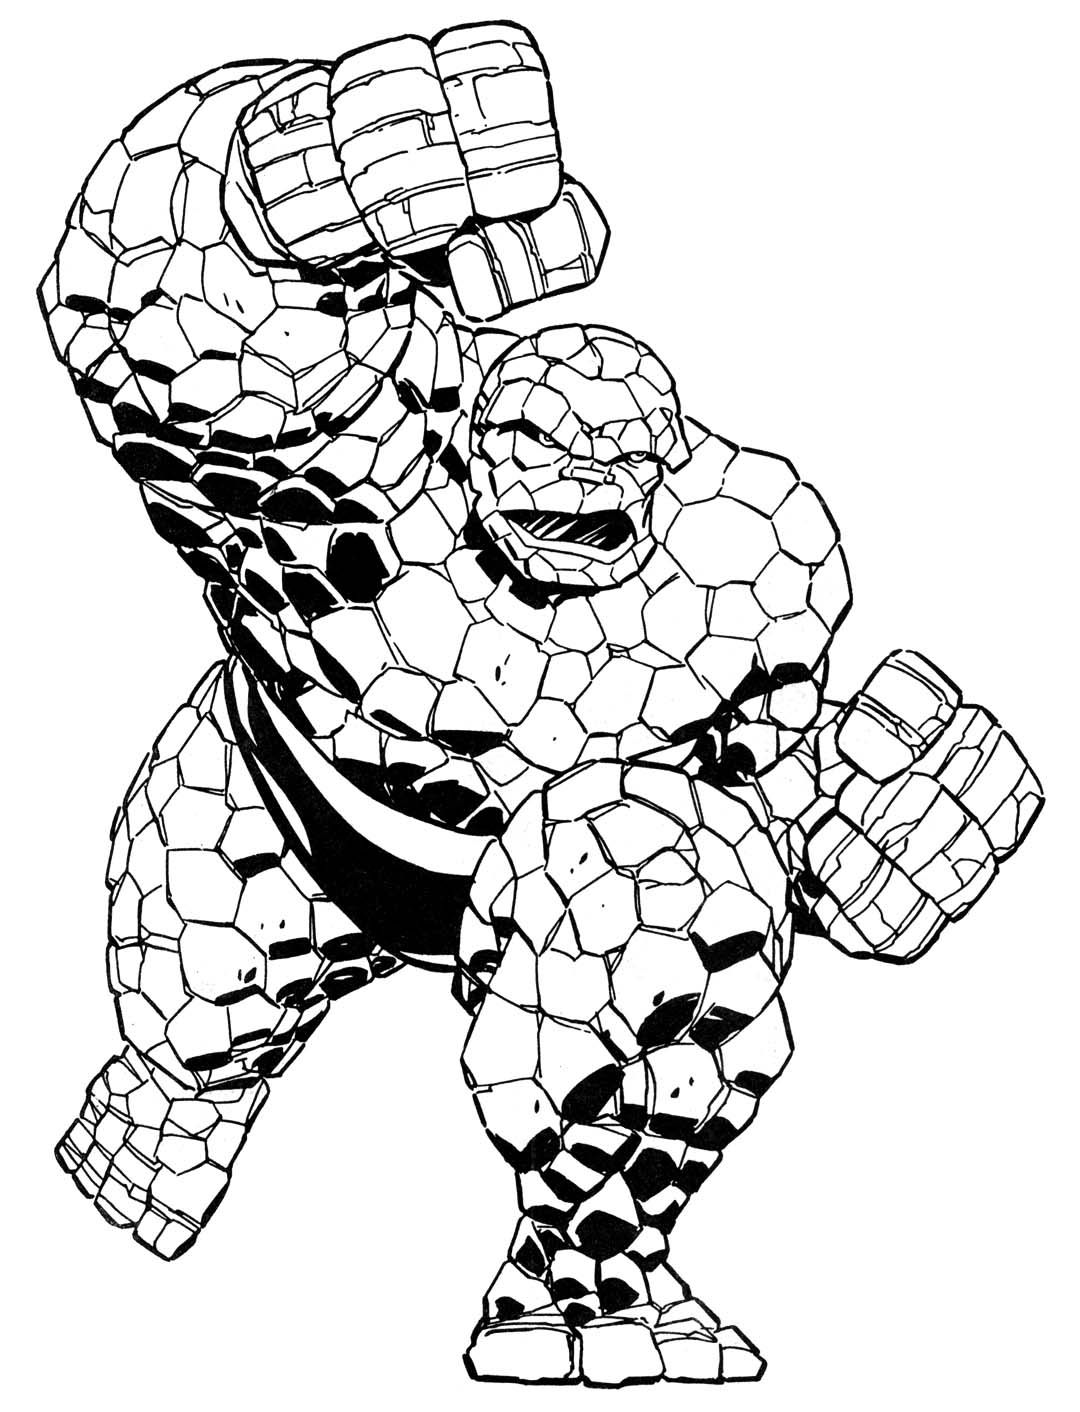 coloring book marvel super heroesmarvel coloring pages - Super Heroes Coloring Book